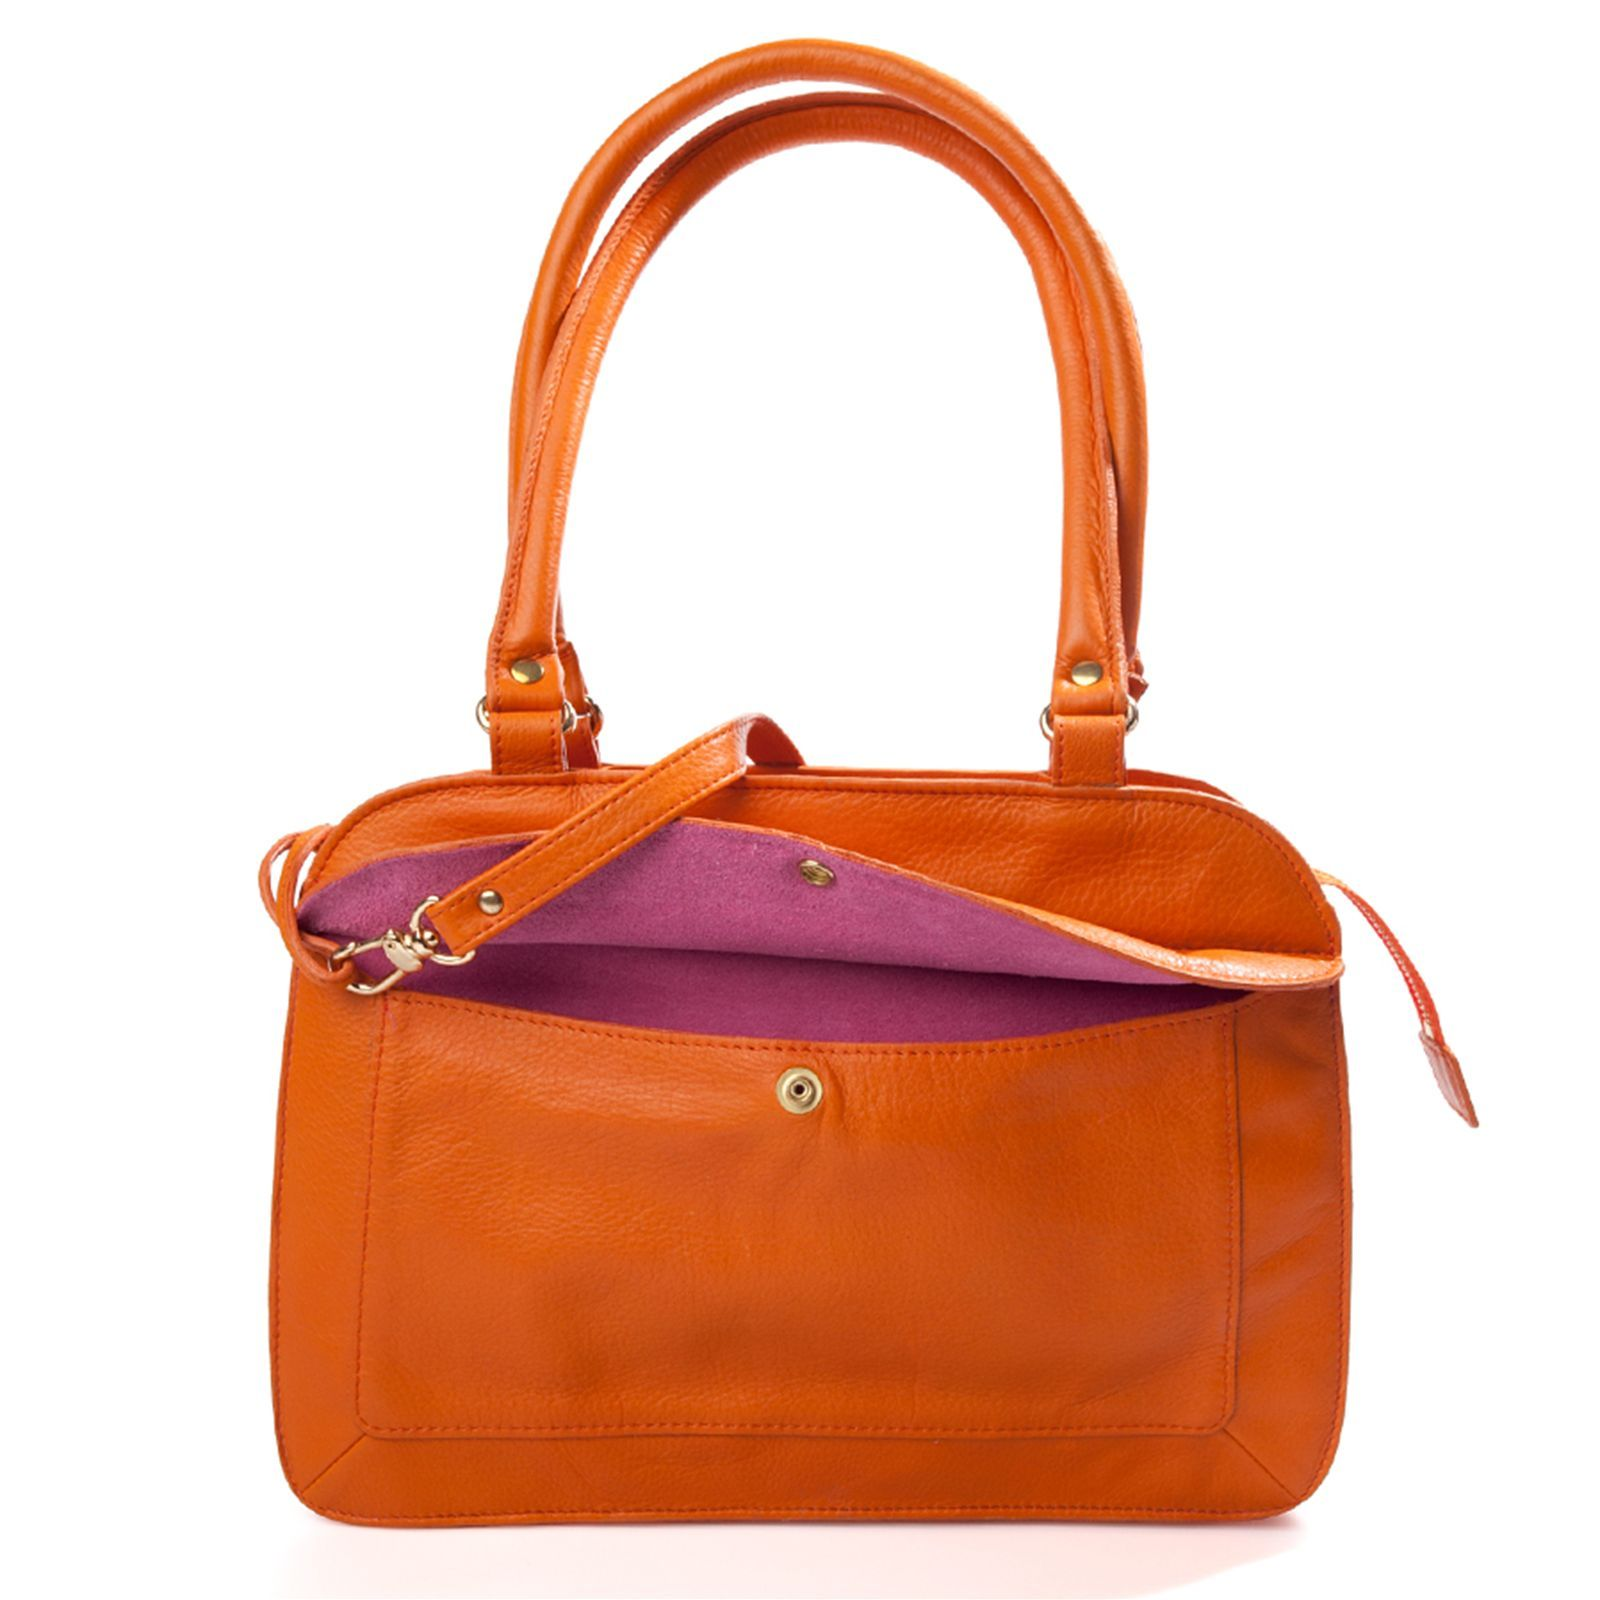 Mamix Accordéon - Sac à main en cuir - orange